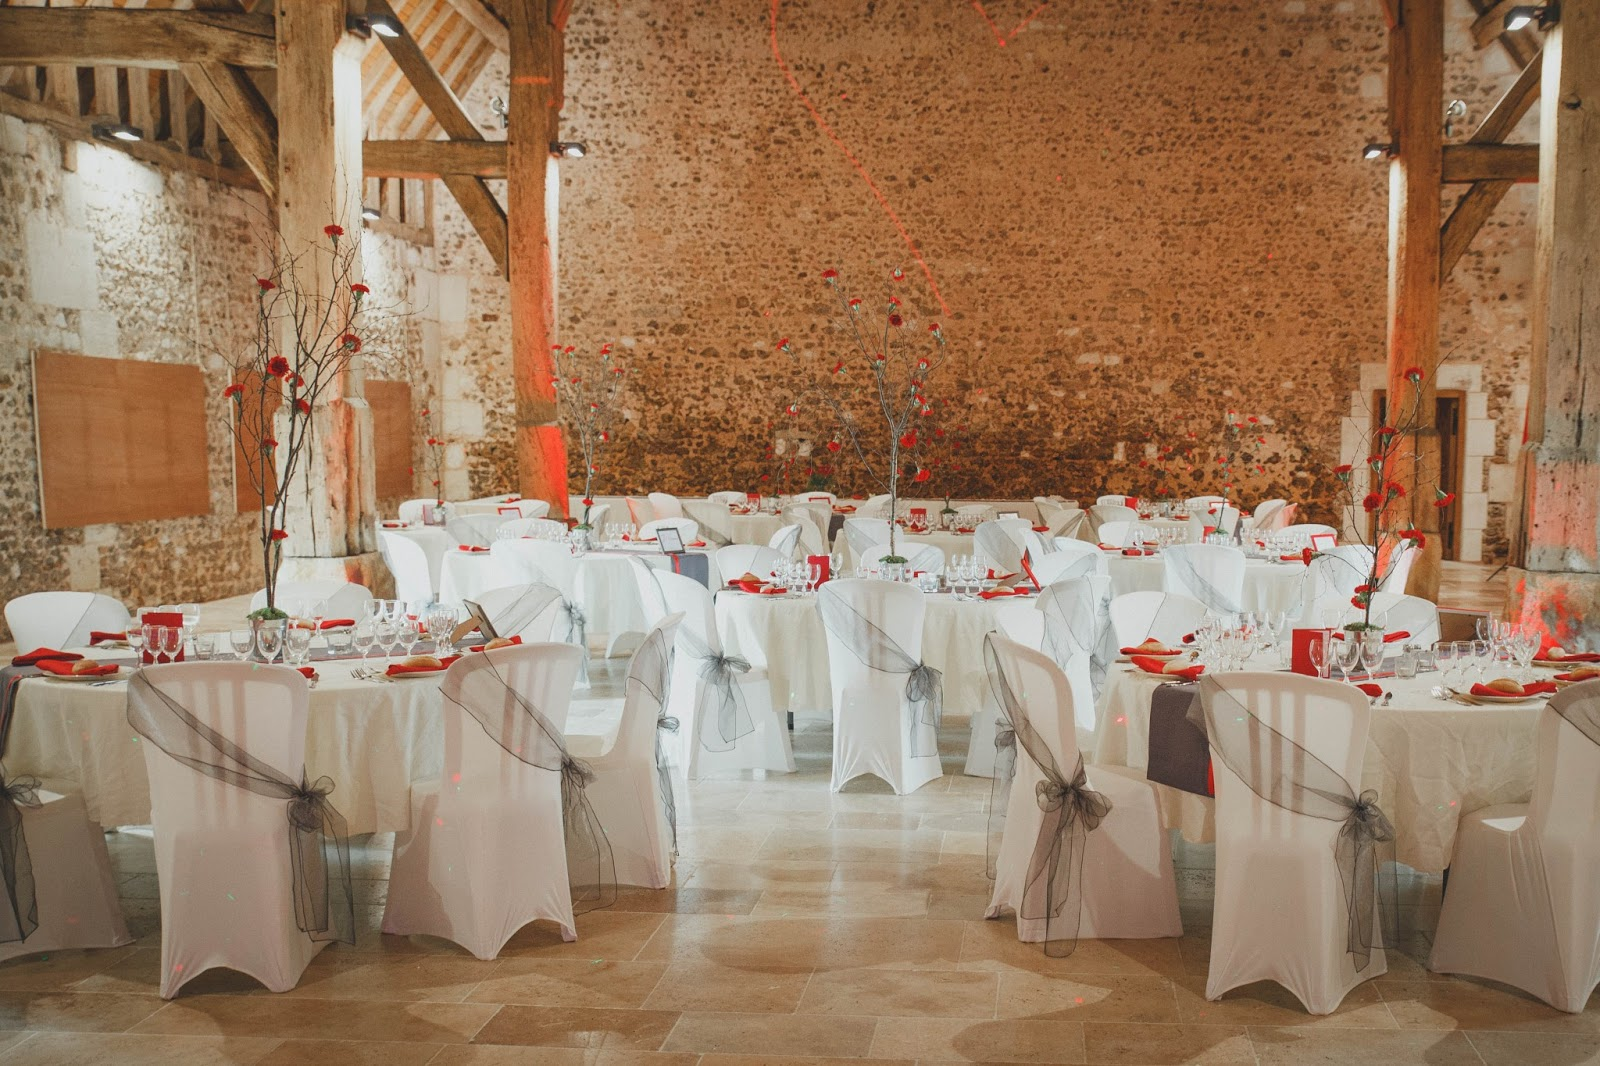 decoration mariage grossiste